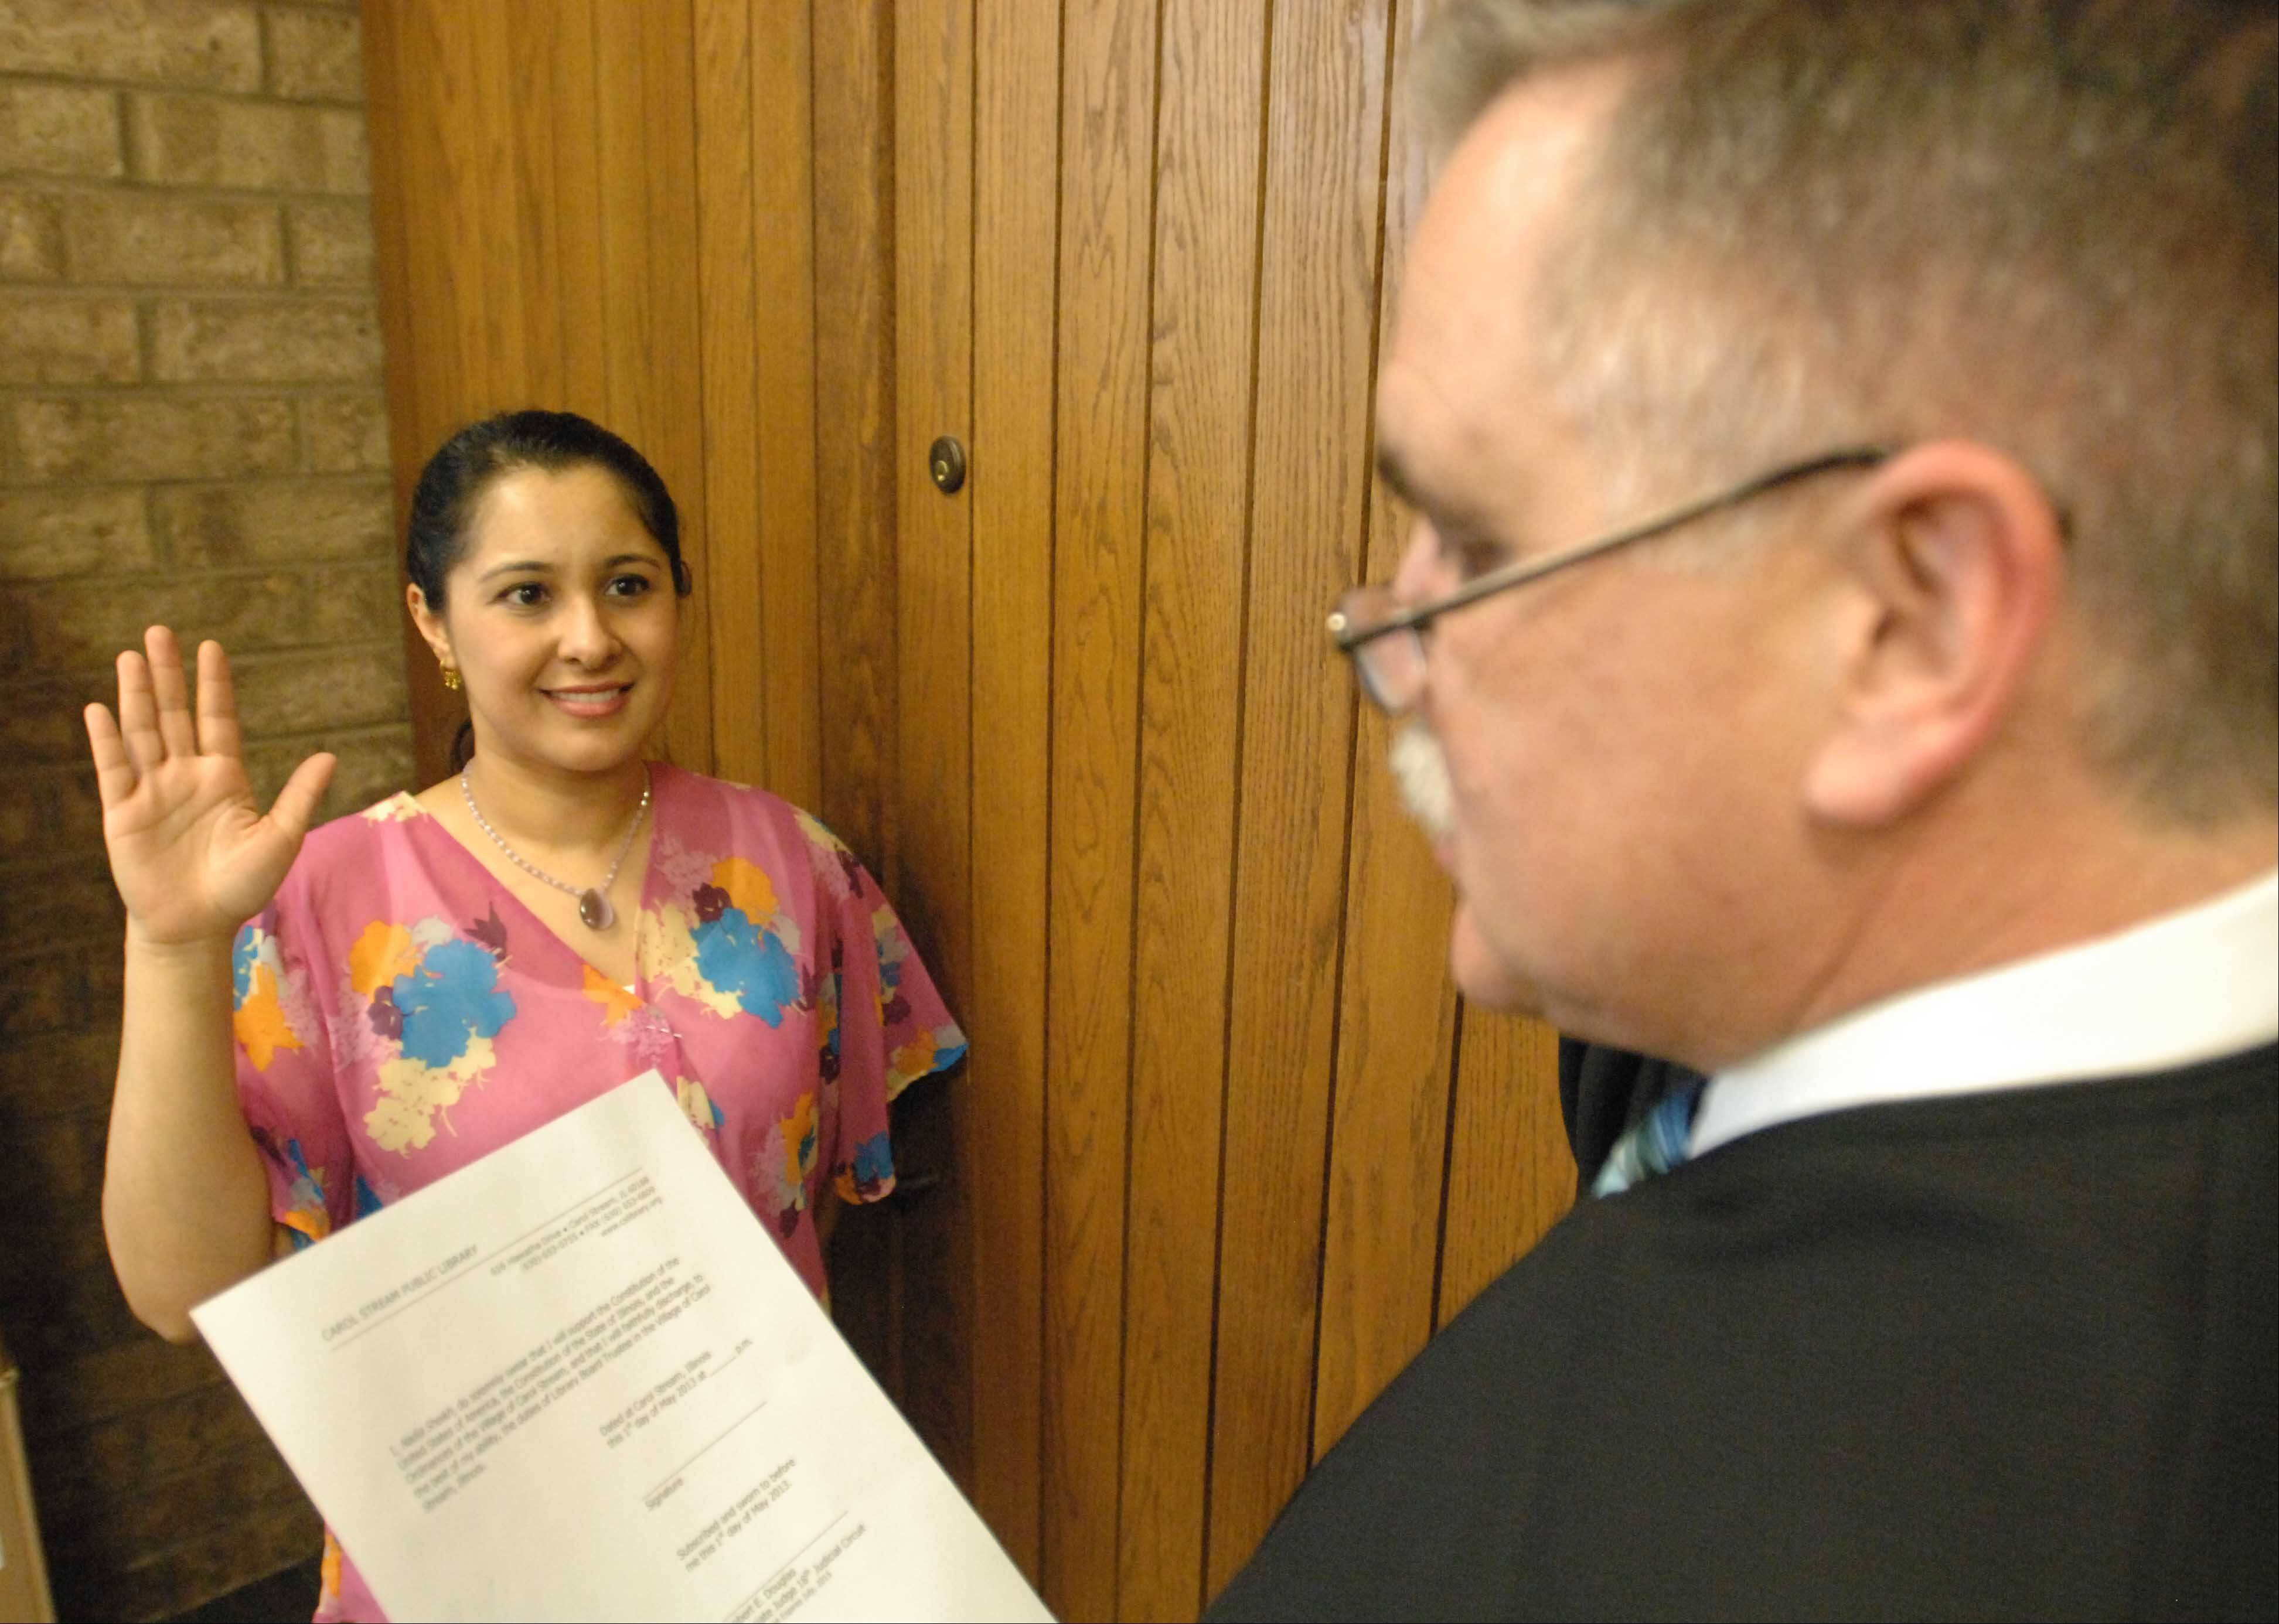 DuPage County Associate Judge Rob Douglas swears in Nadia Sheikh, one of the newly elected Carol Stream library board trustees, on Wednesday -- two weeks earlier than scheduled so the new board could prevent the outgoing board's attempt to sell the library's Kuhn Road property.